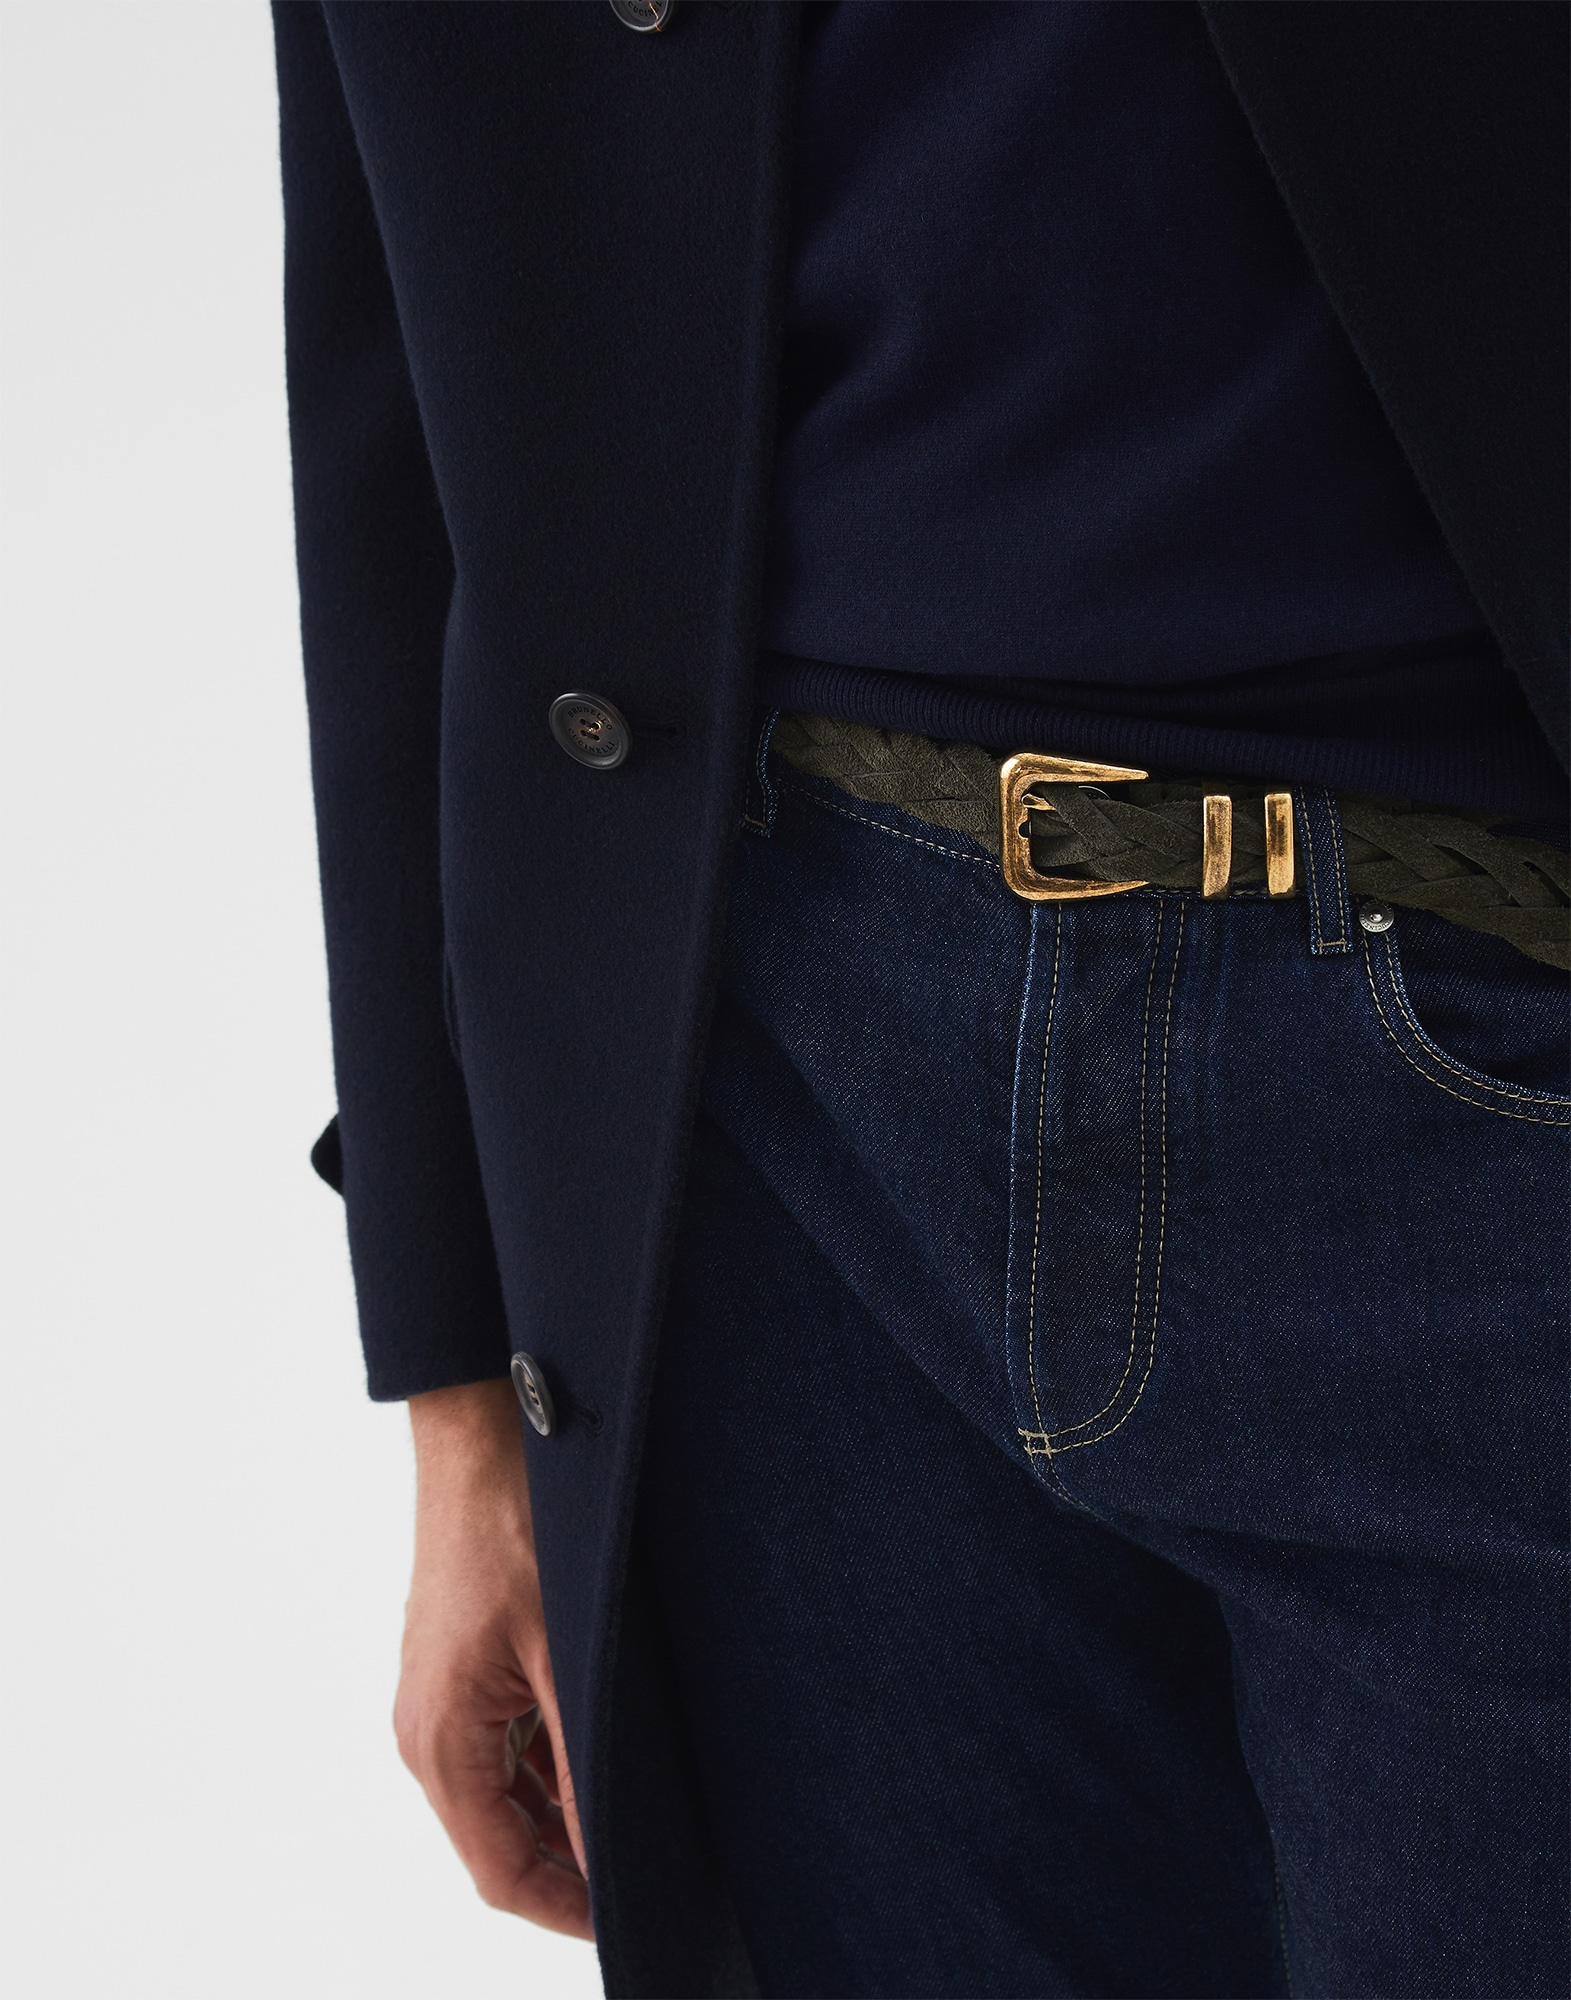 Belt - Editorial view